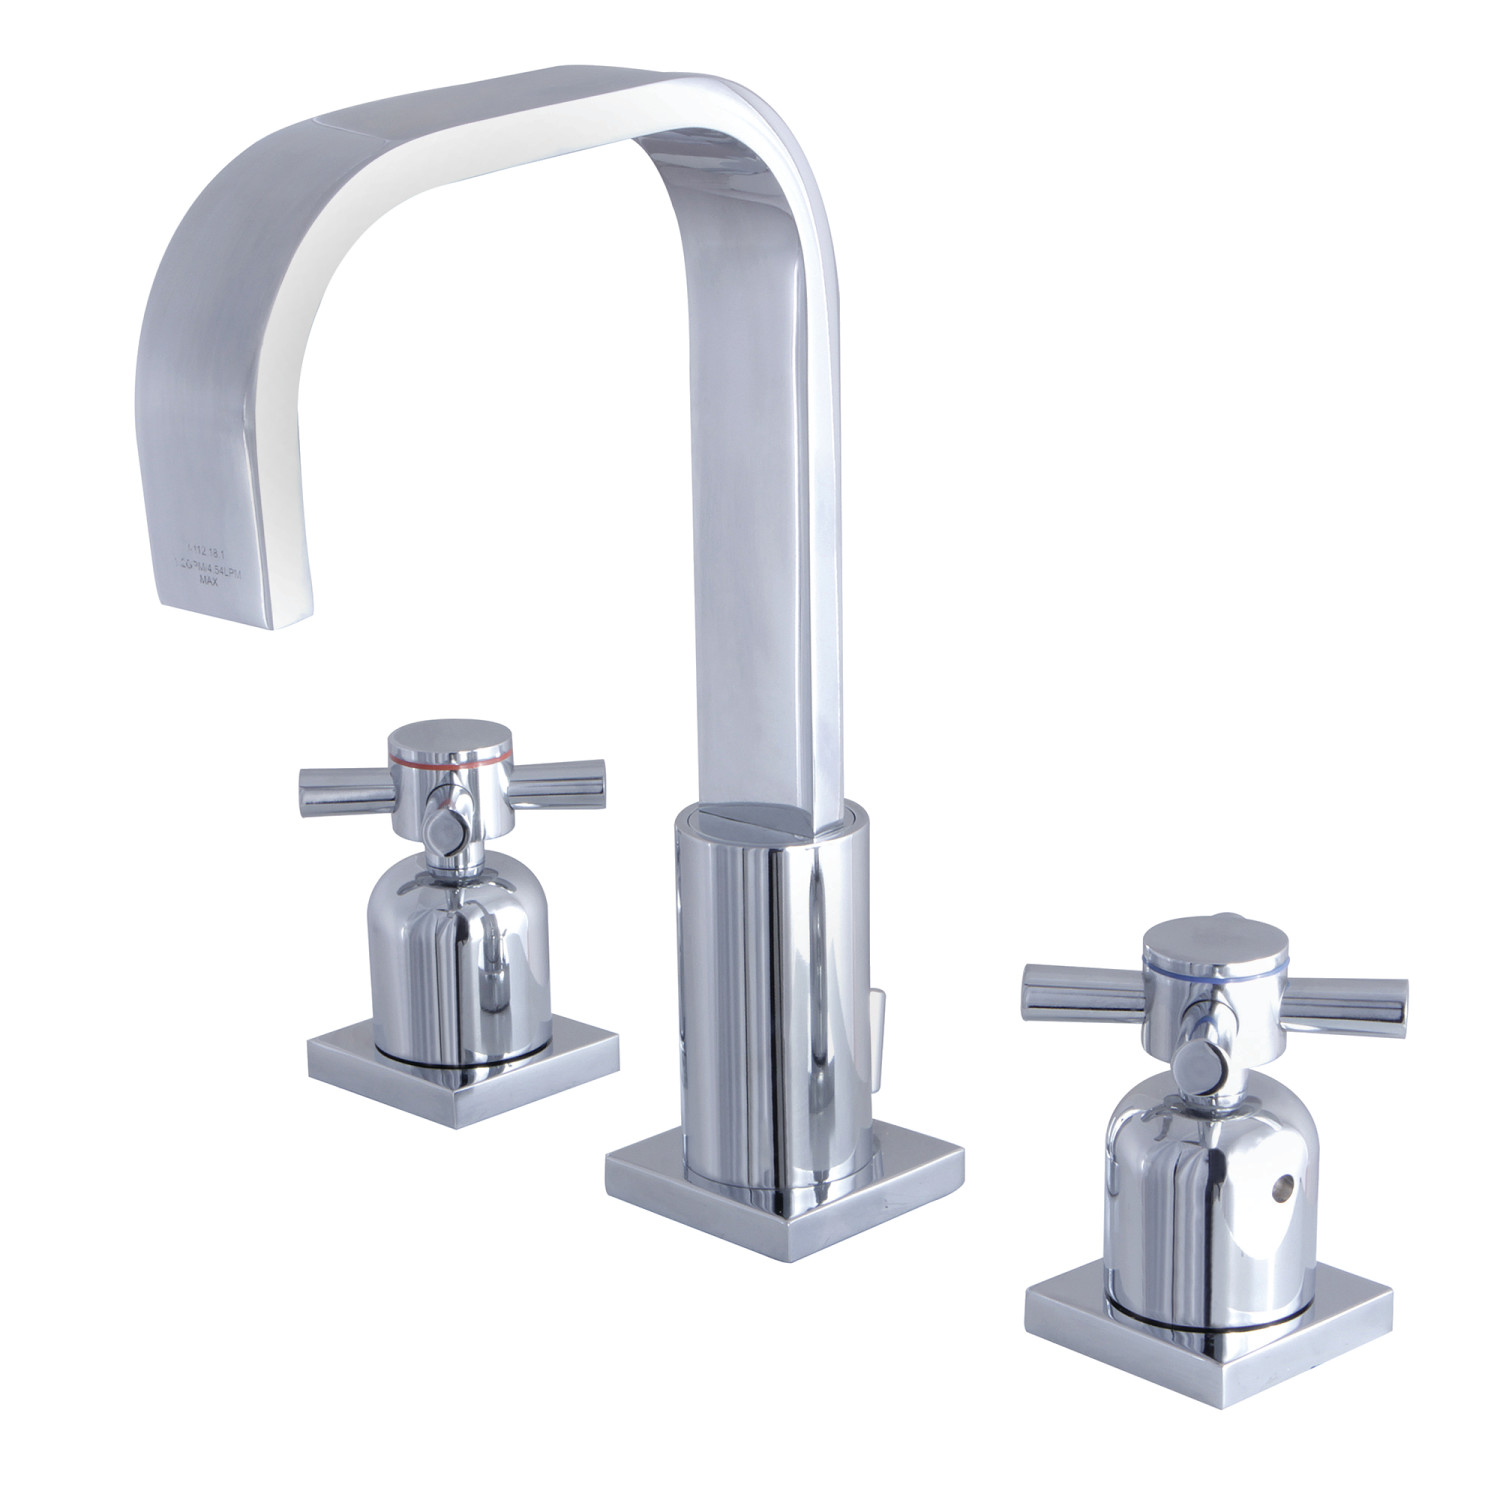 Modern Two-Handle 3-Hole Deck Mounted Widespread Bathroom Faucet with Plastic Pop-Up in Polished Chrome with 3 Finish Option